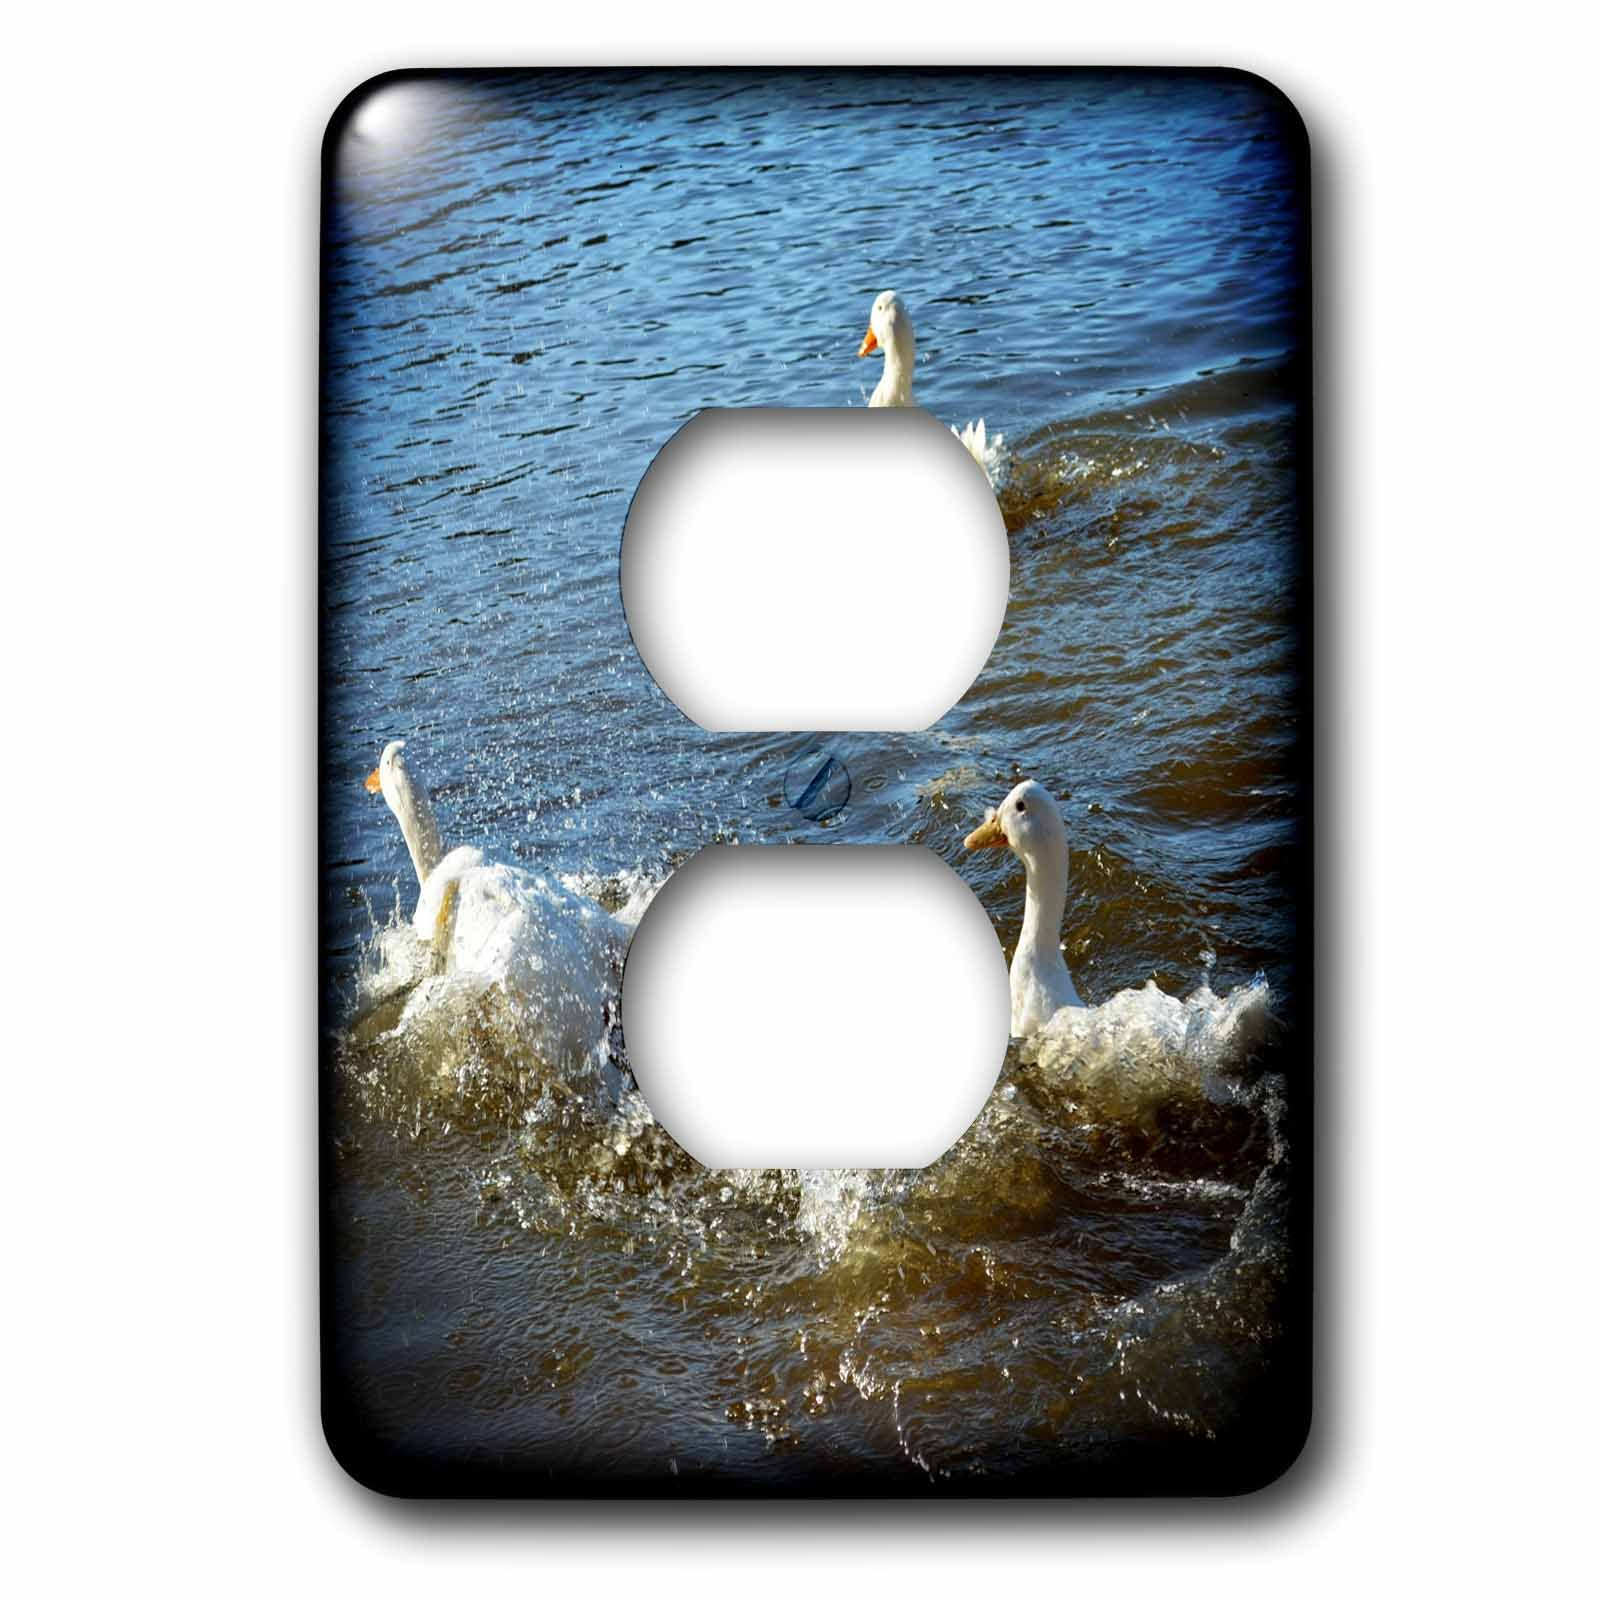 3dRose WhiteOaks Photography and Artwork - Ducks - Splish Splash is a group of ducks splashing around - Light Switch Covers - 2 plug outlet cover (lsp_265325_6) by 3dRose (Image #1)